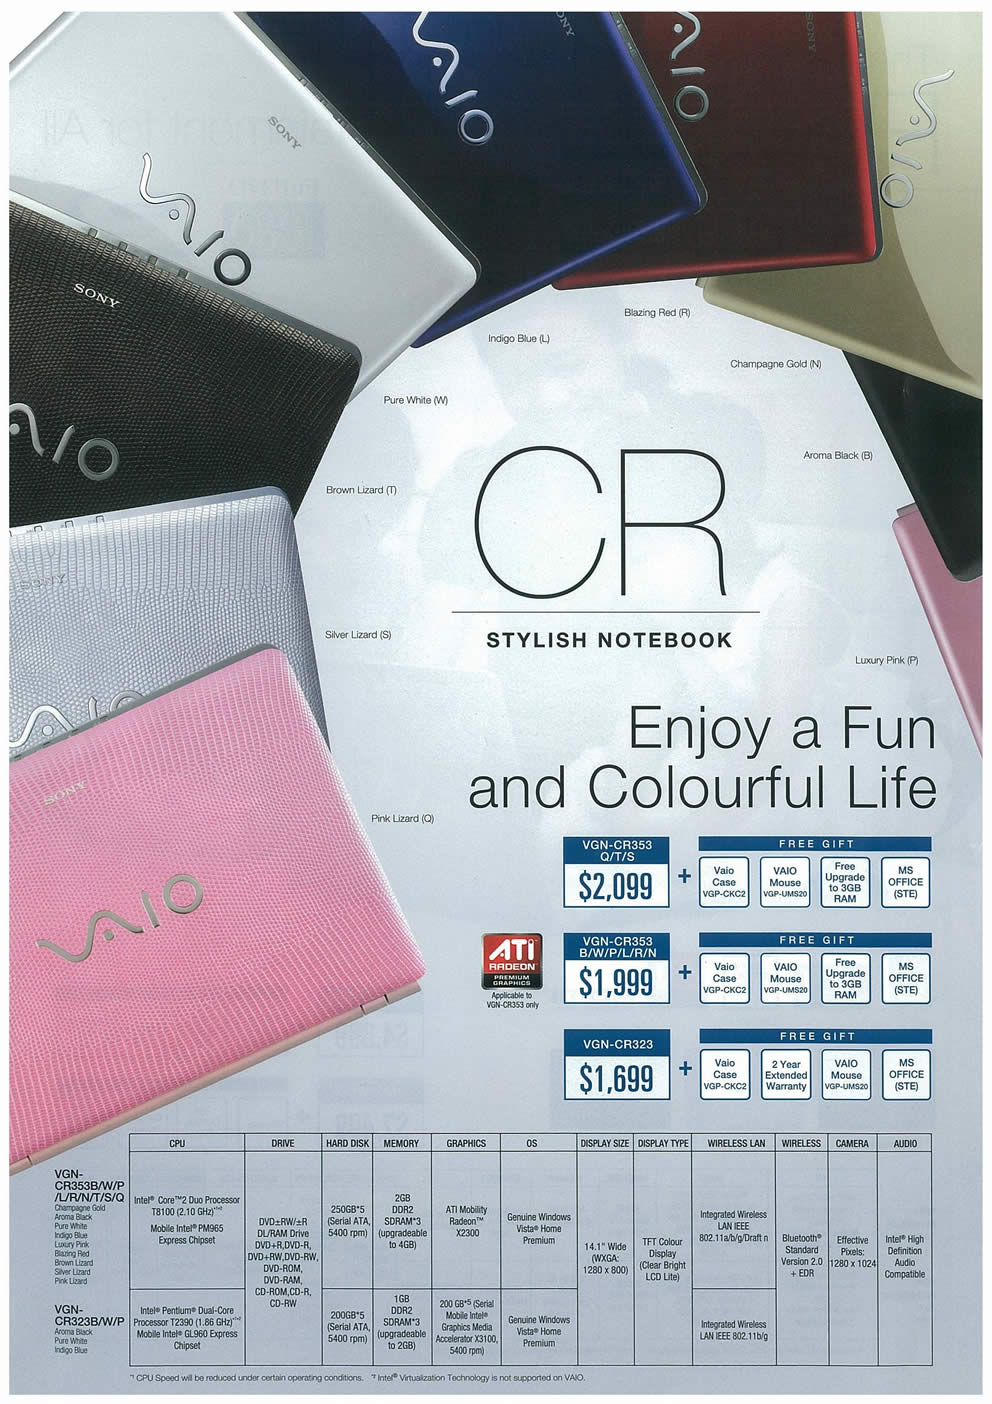 Comex 2008 price list image brochure of Sony VAIO Notebooks Page 4